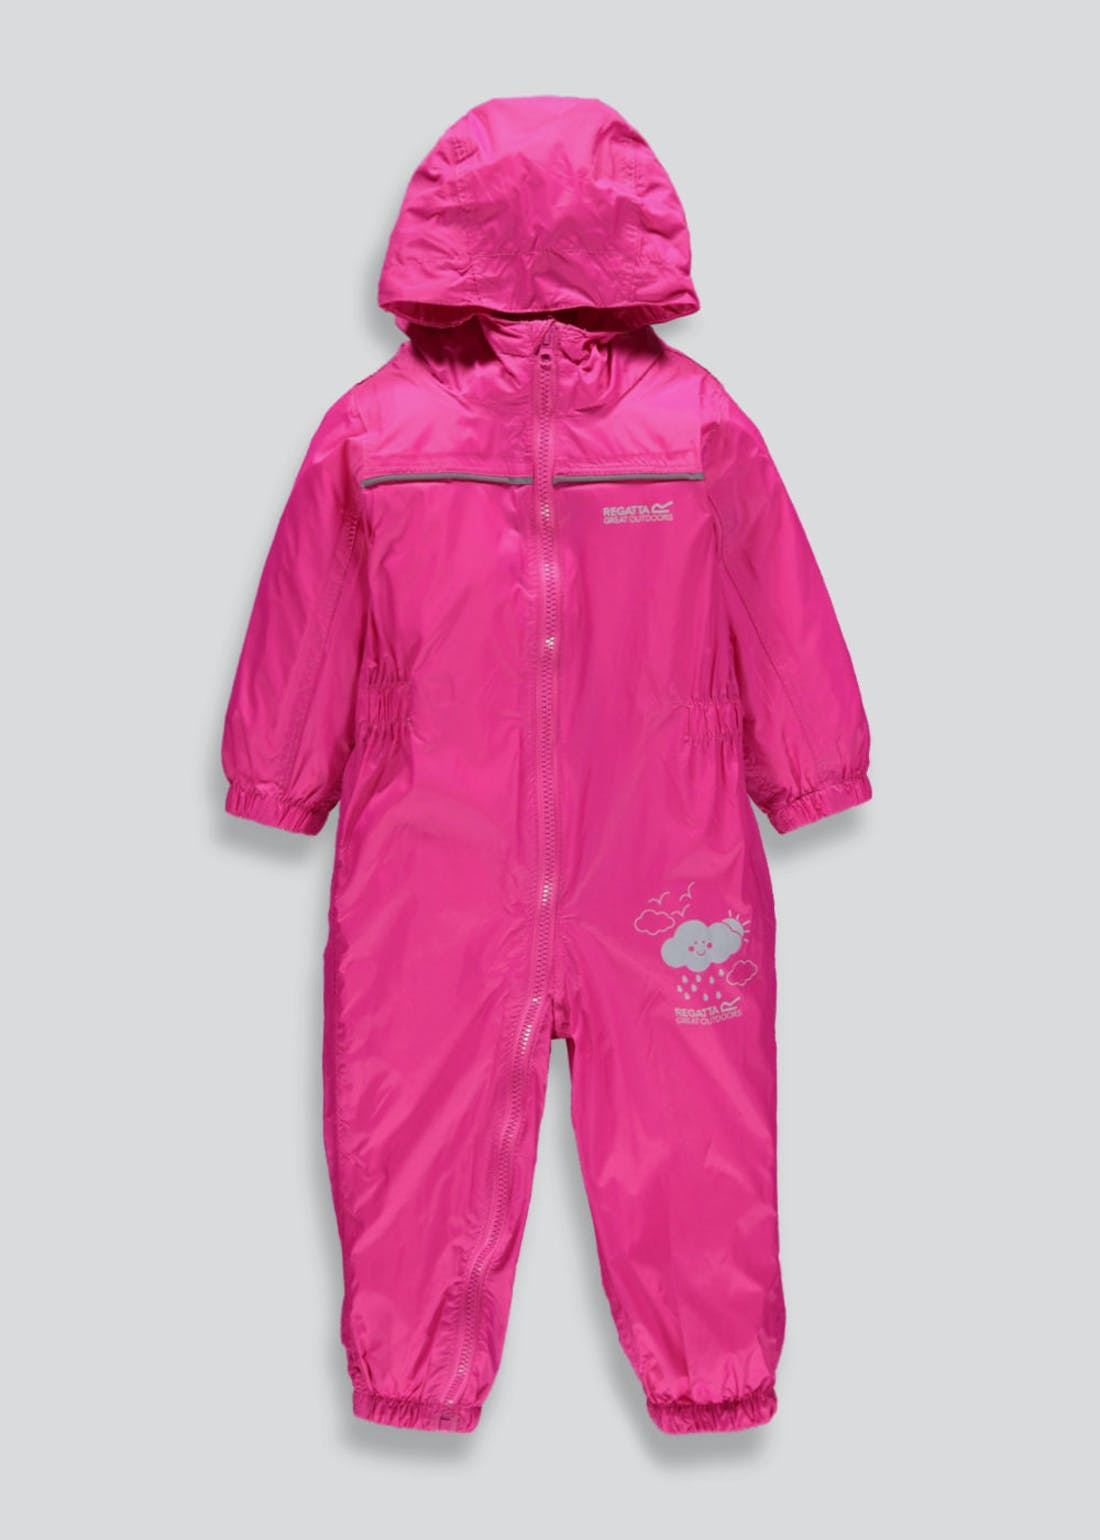 Regatta Pink Waterproof Puddle Suit (12mths-5yrs)